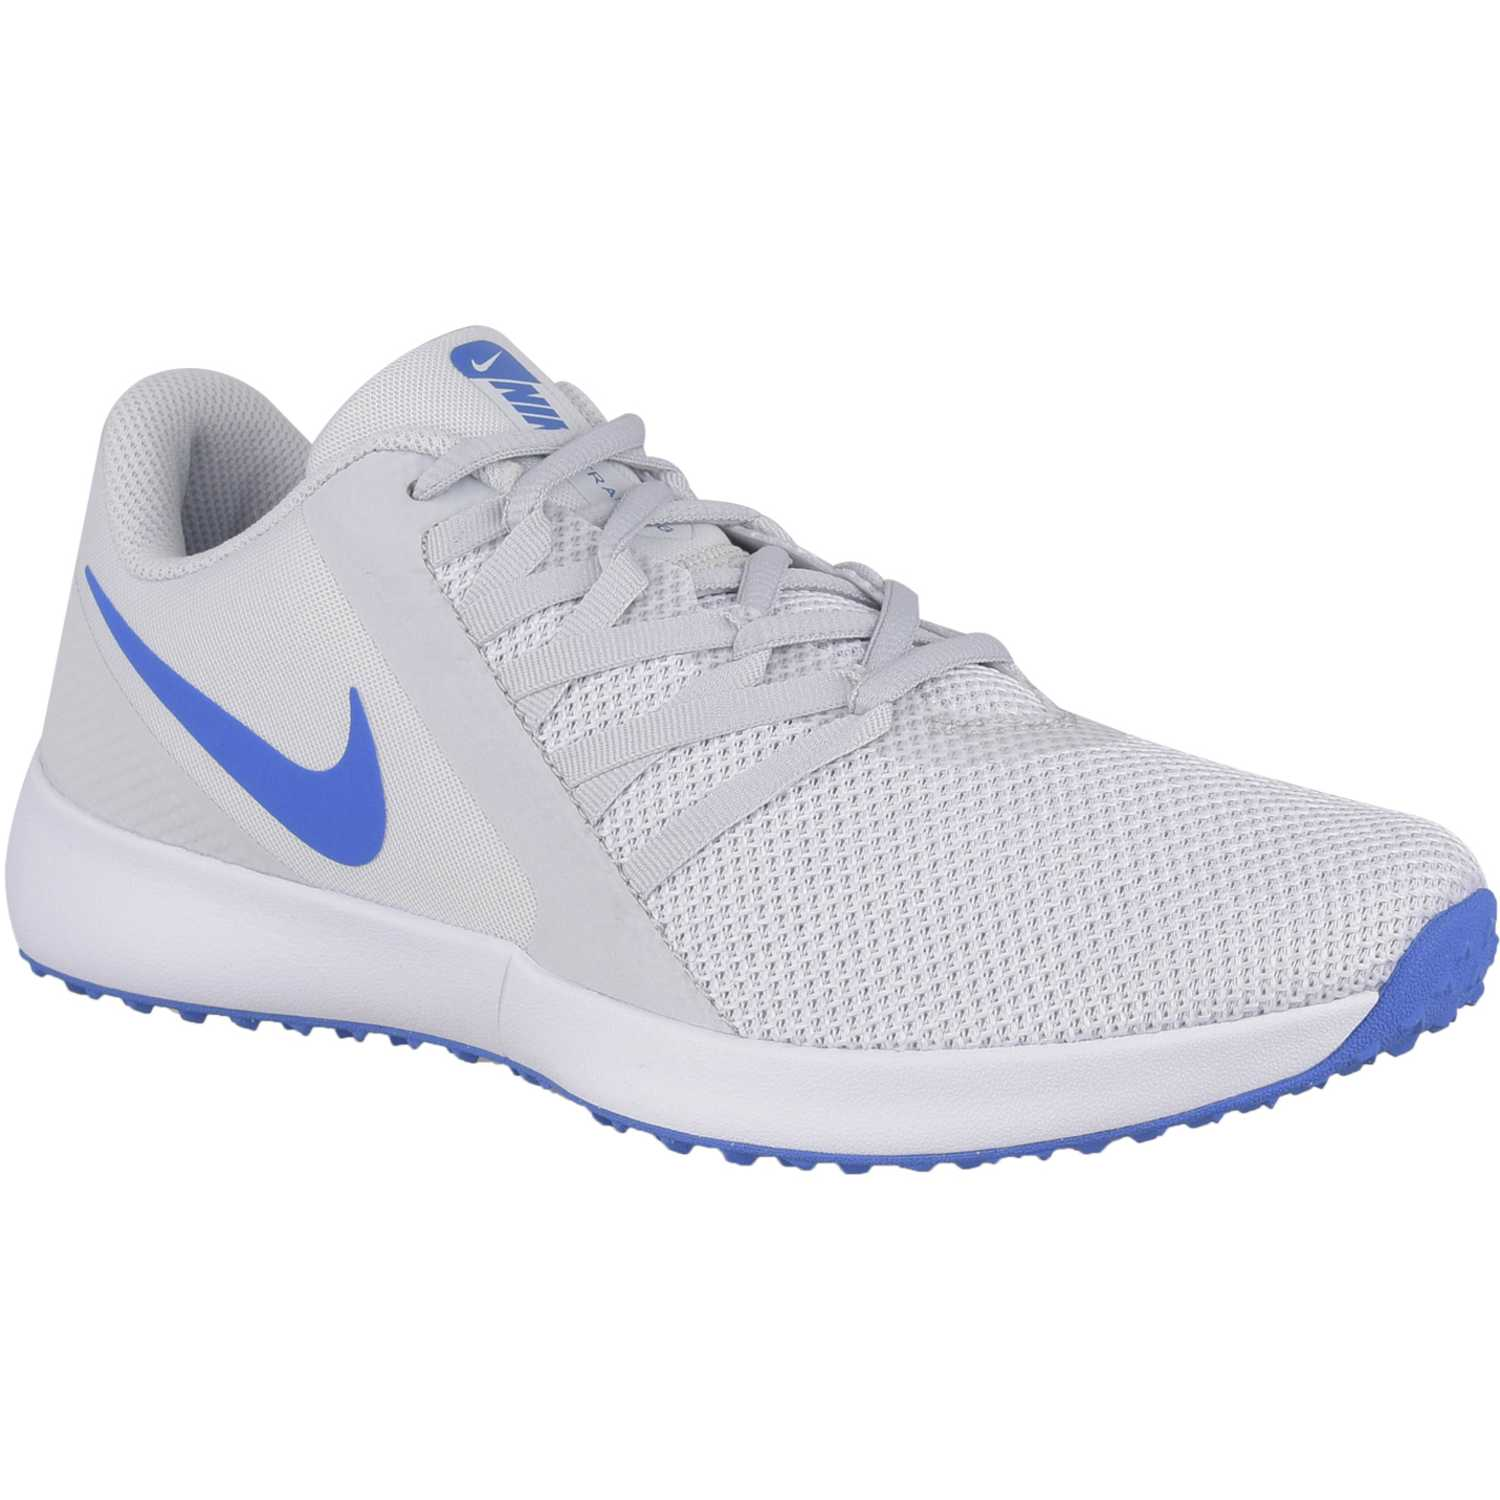 Nike nike varsity compete trainer Gris / azul Hombres